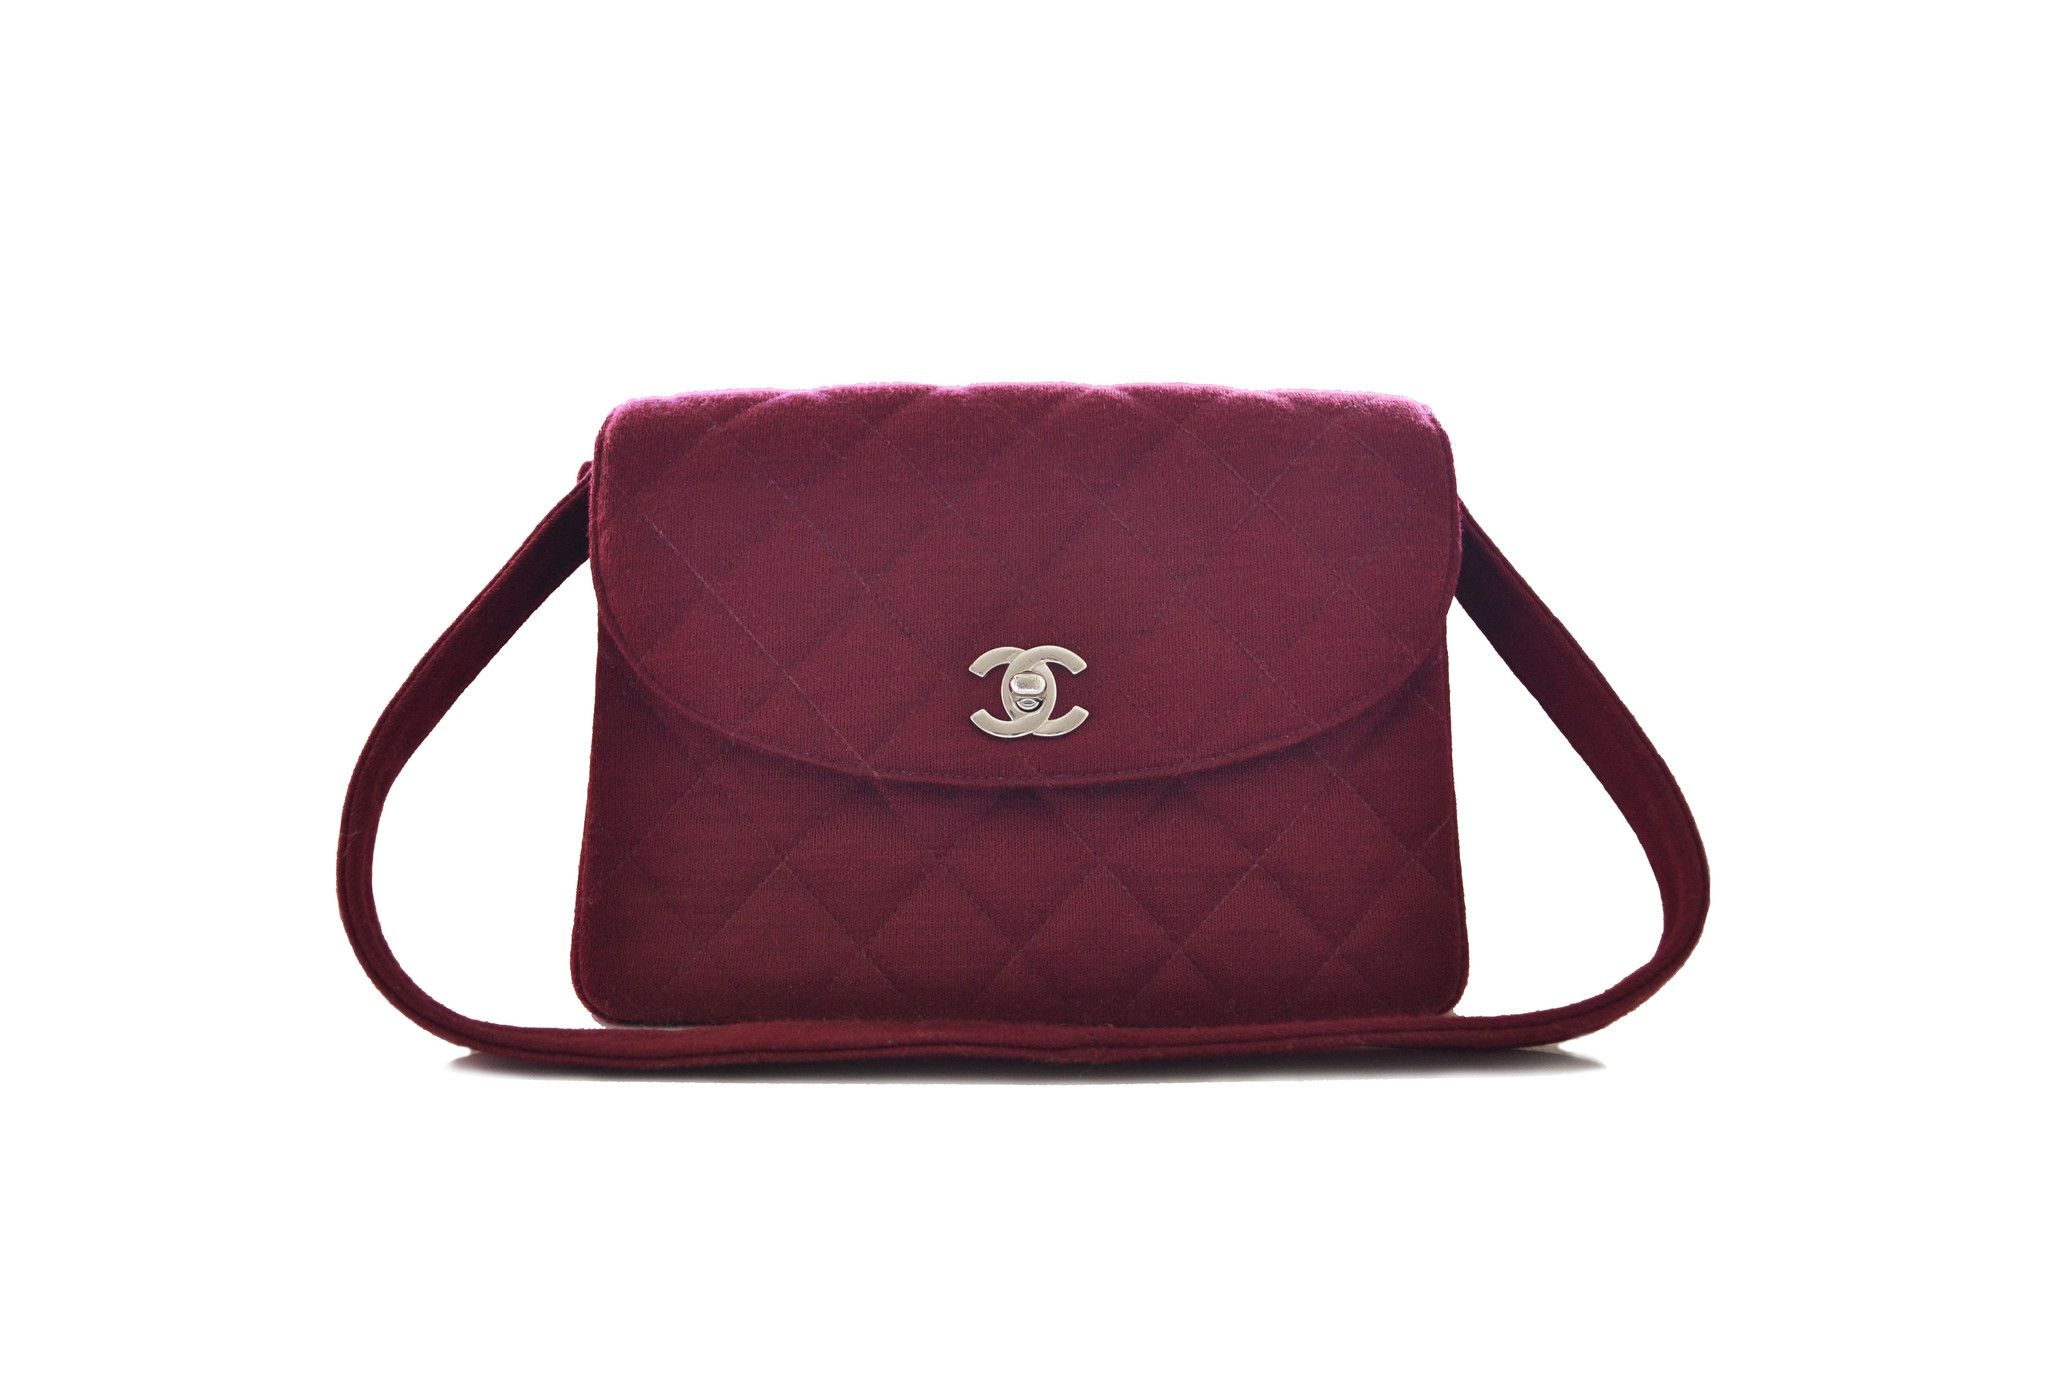 Free Uk Chanel Vintage Bag Quilted Jersey In Burgundy From District Authentic Designer Bags